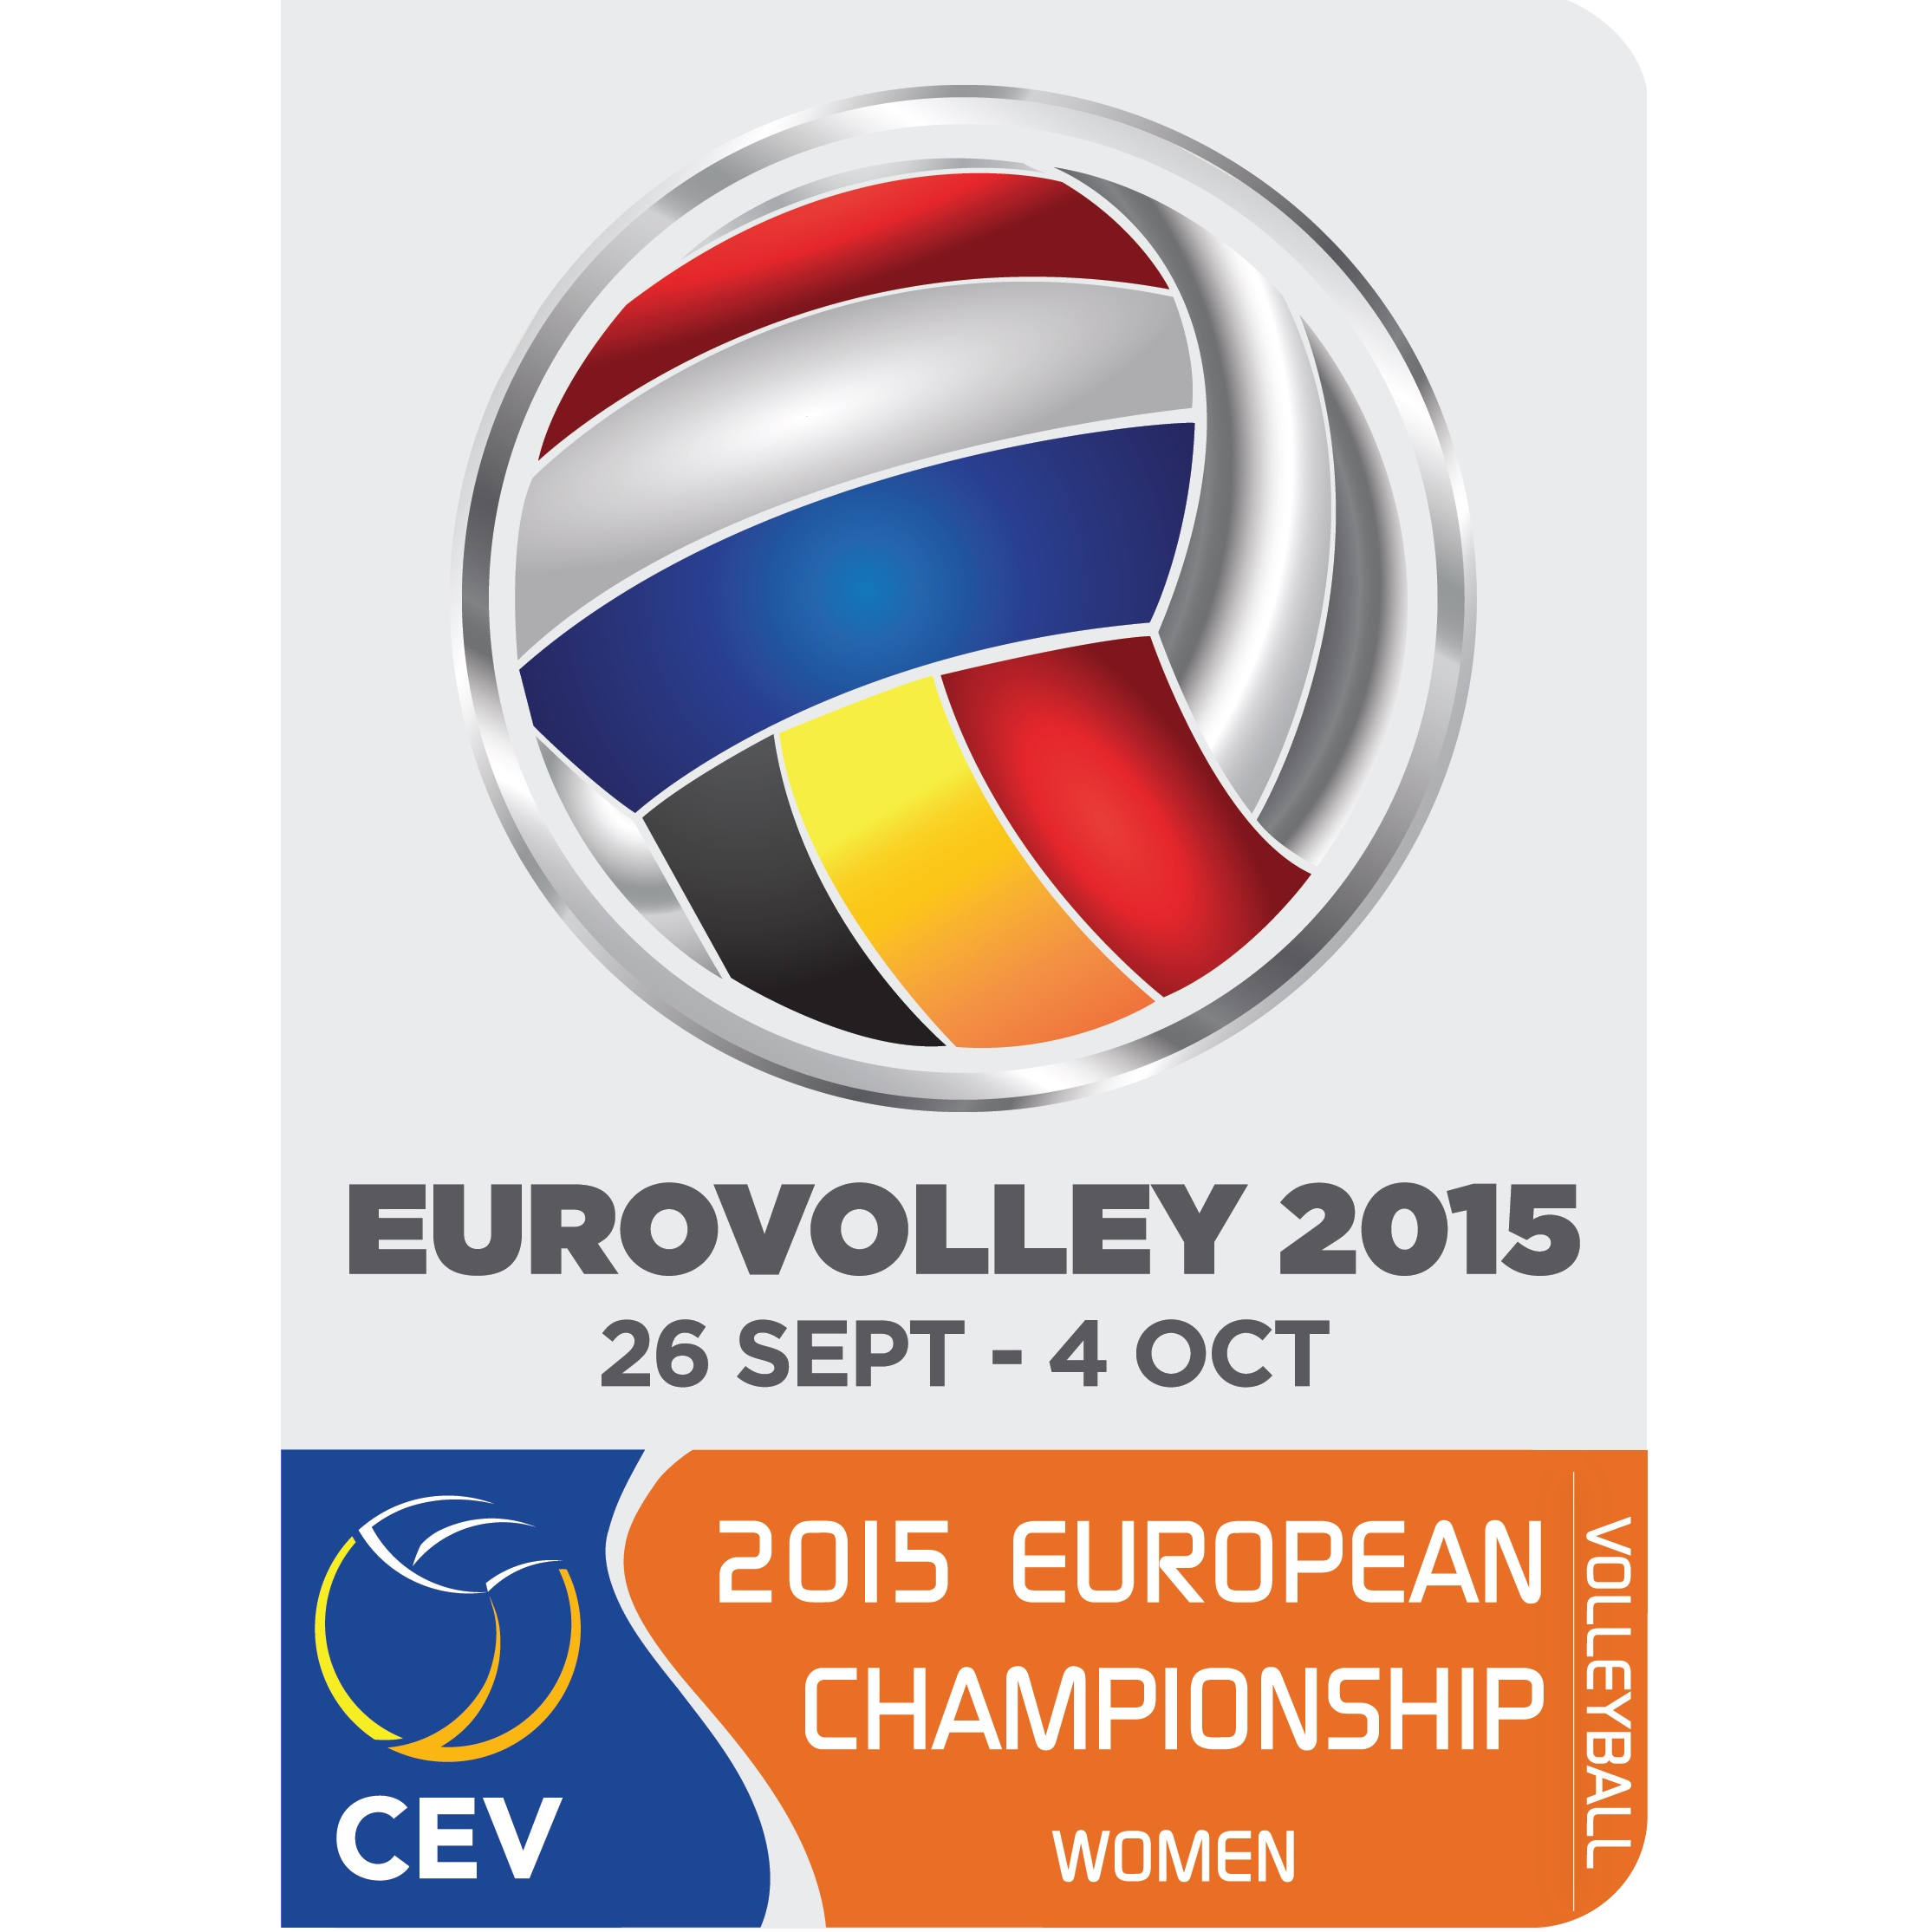 2015 European Women's Volleyball Championship